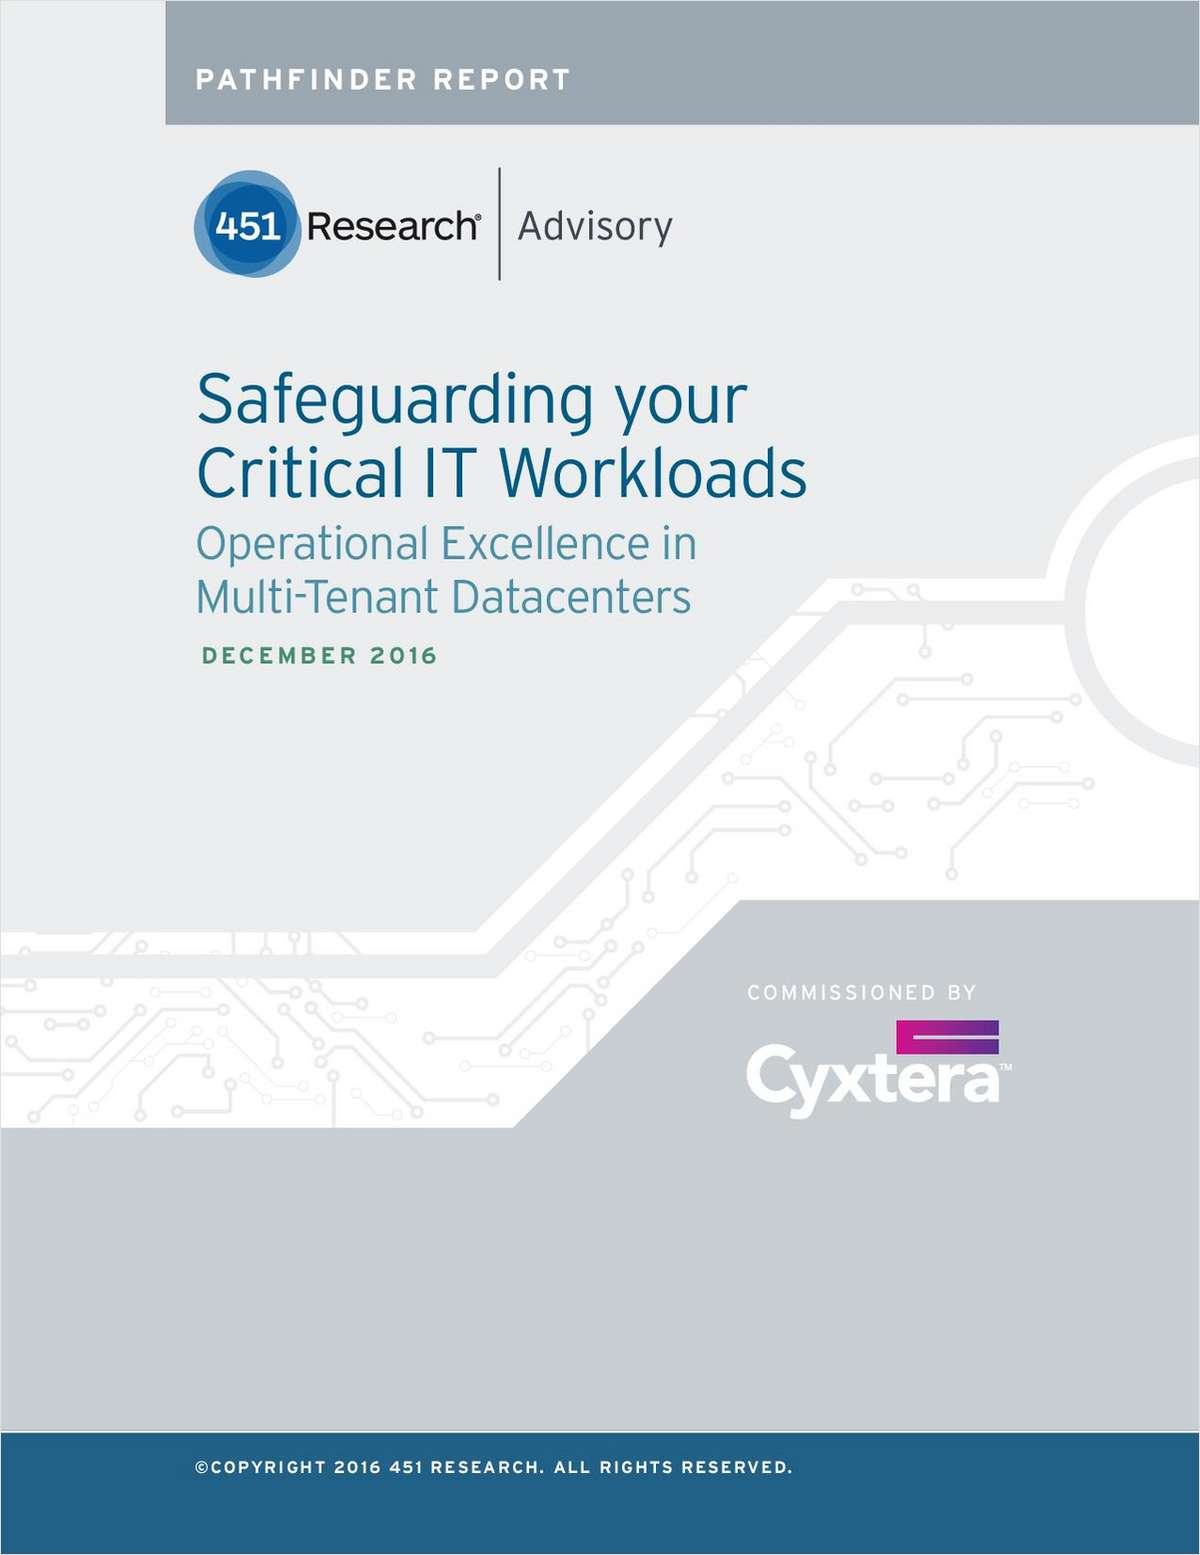 Safeguarding your Critical IT Workloads: Operational Excellence in Multi-Tenant Datacenters